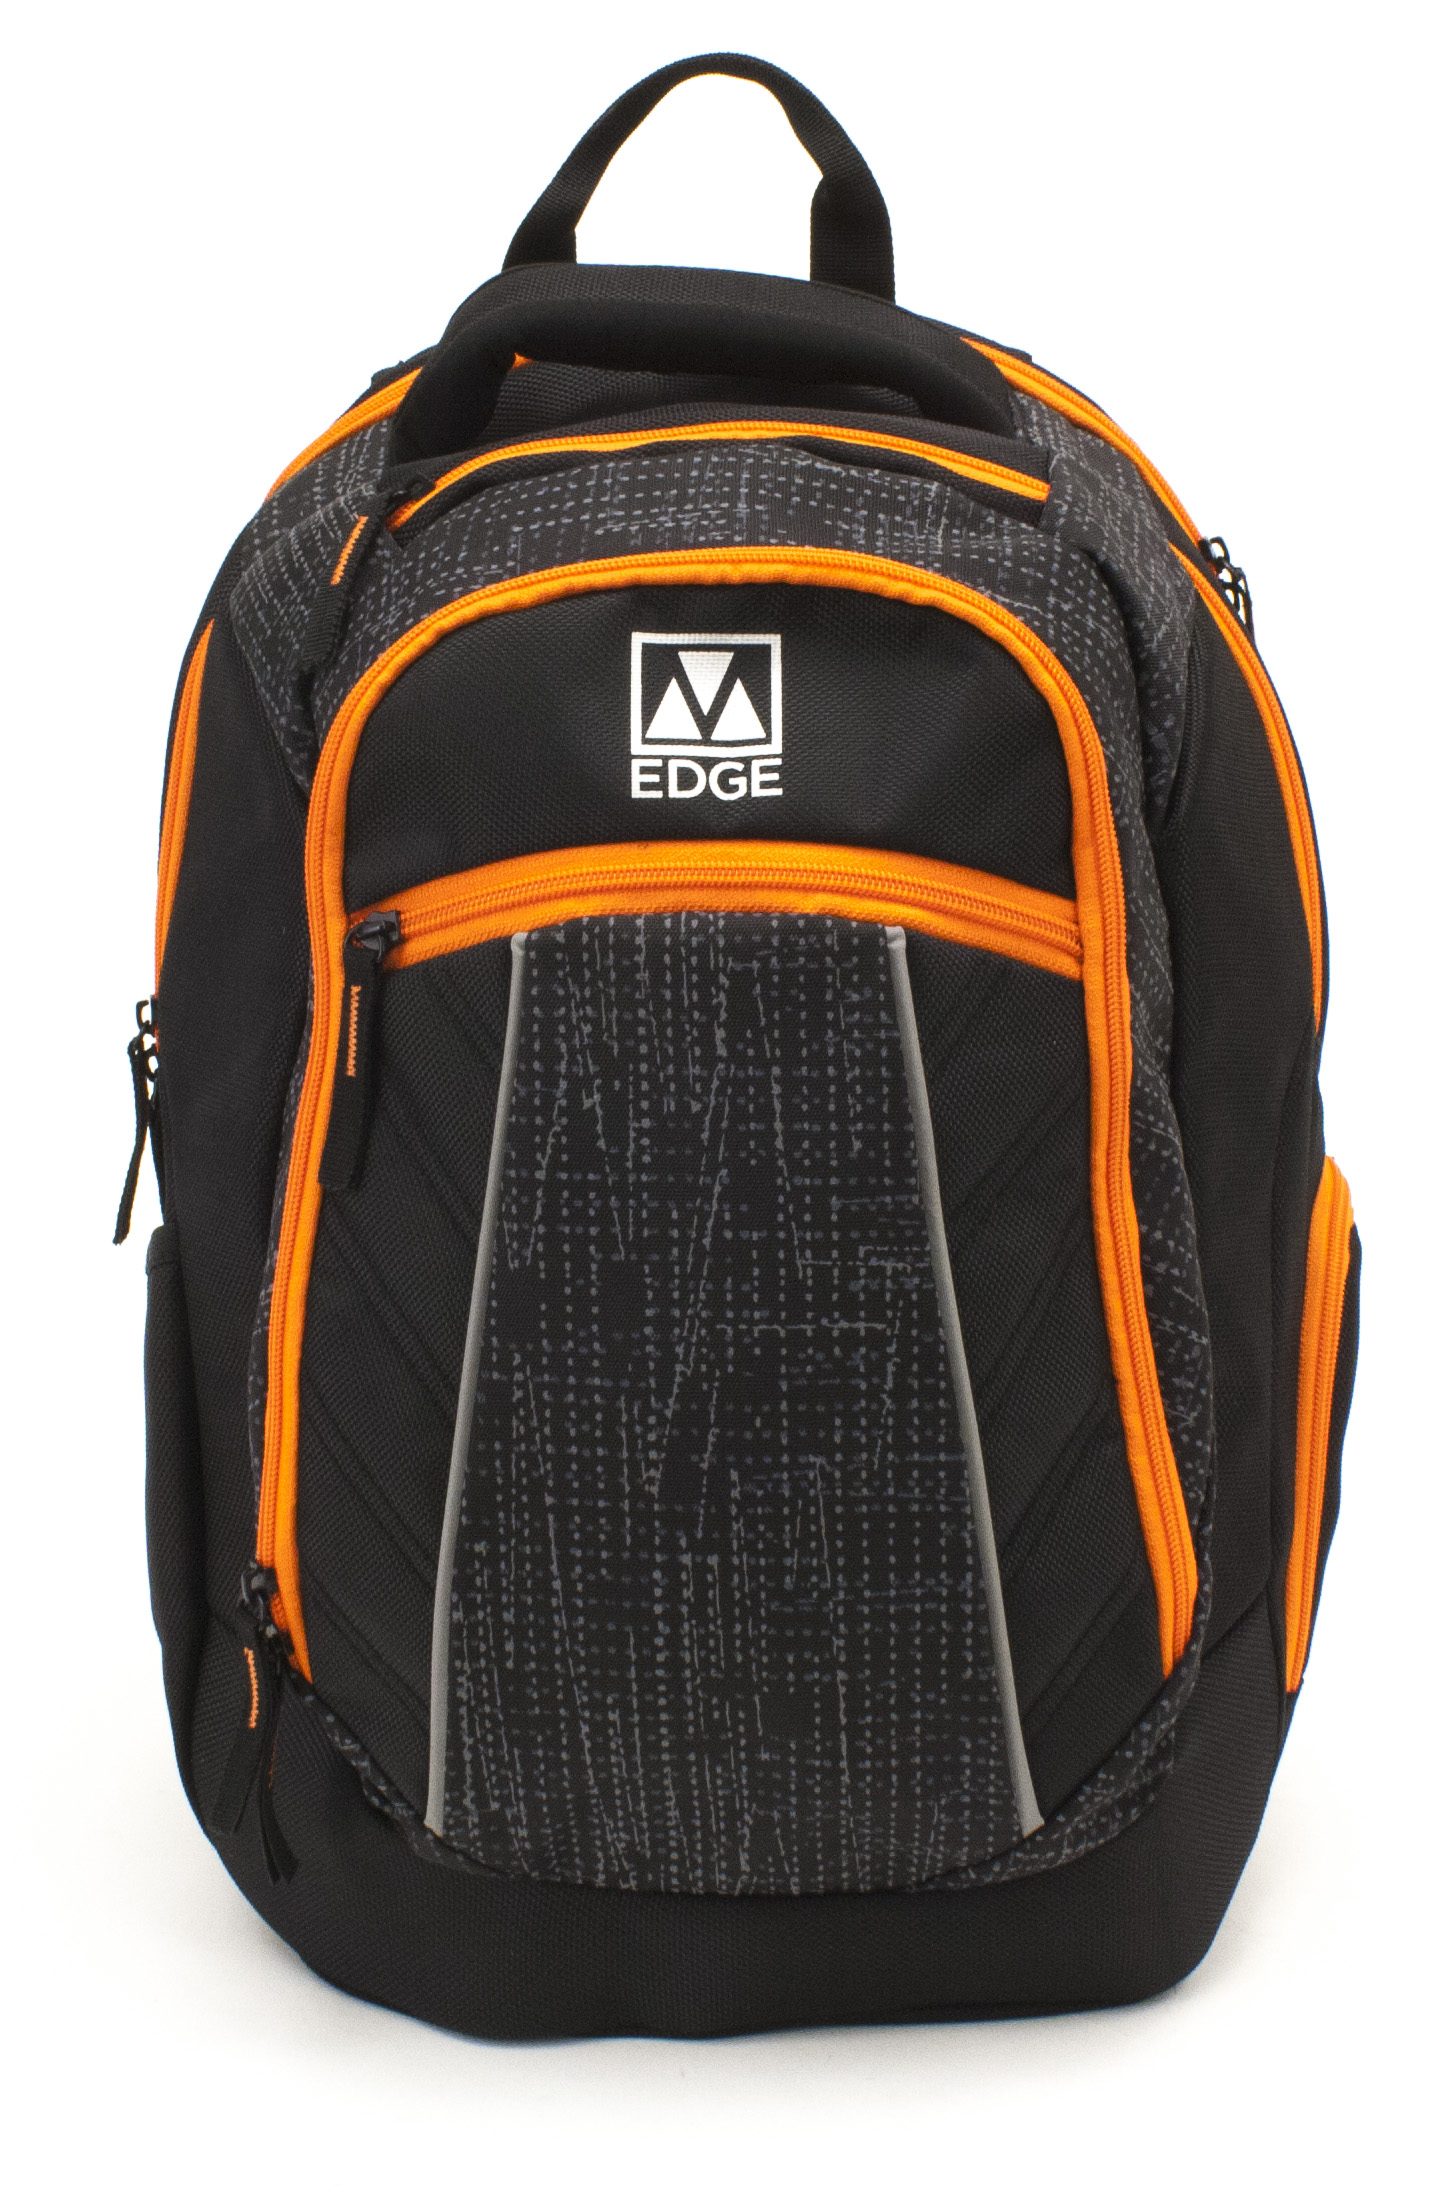 Commuter Backpack with 6000 mAh Battery by M-Edge International